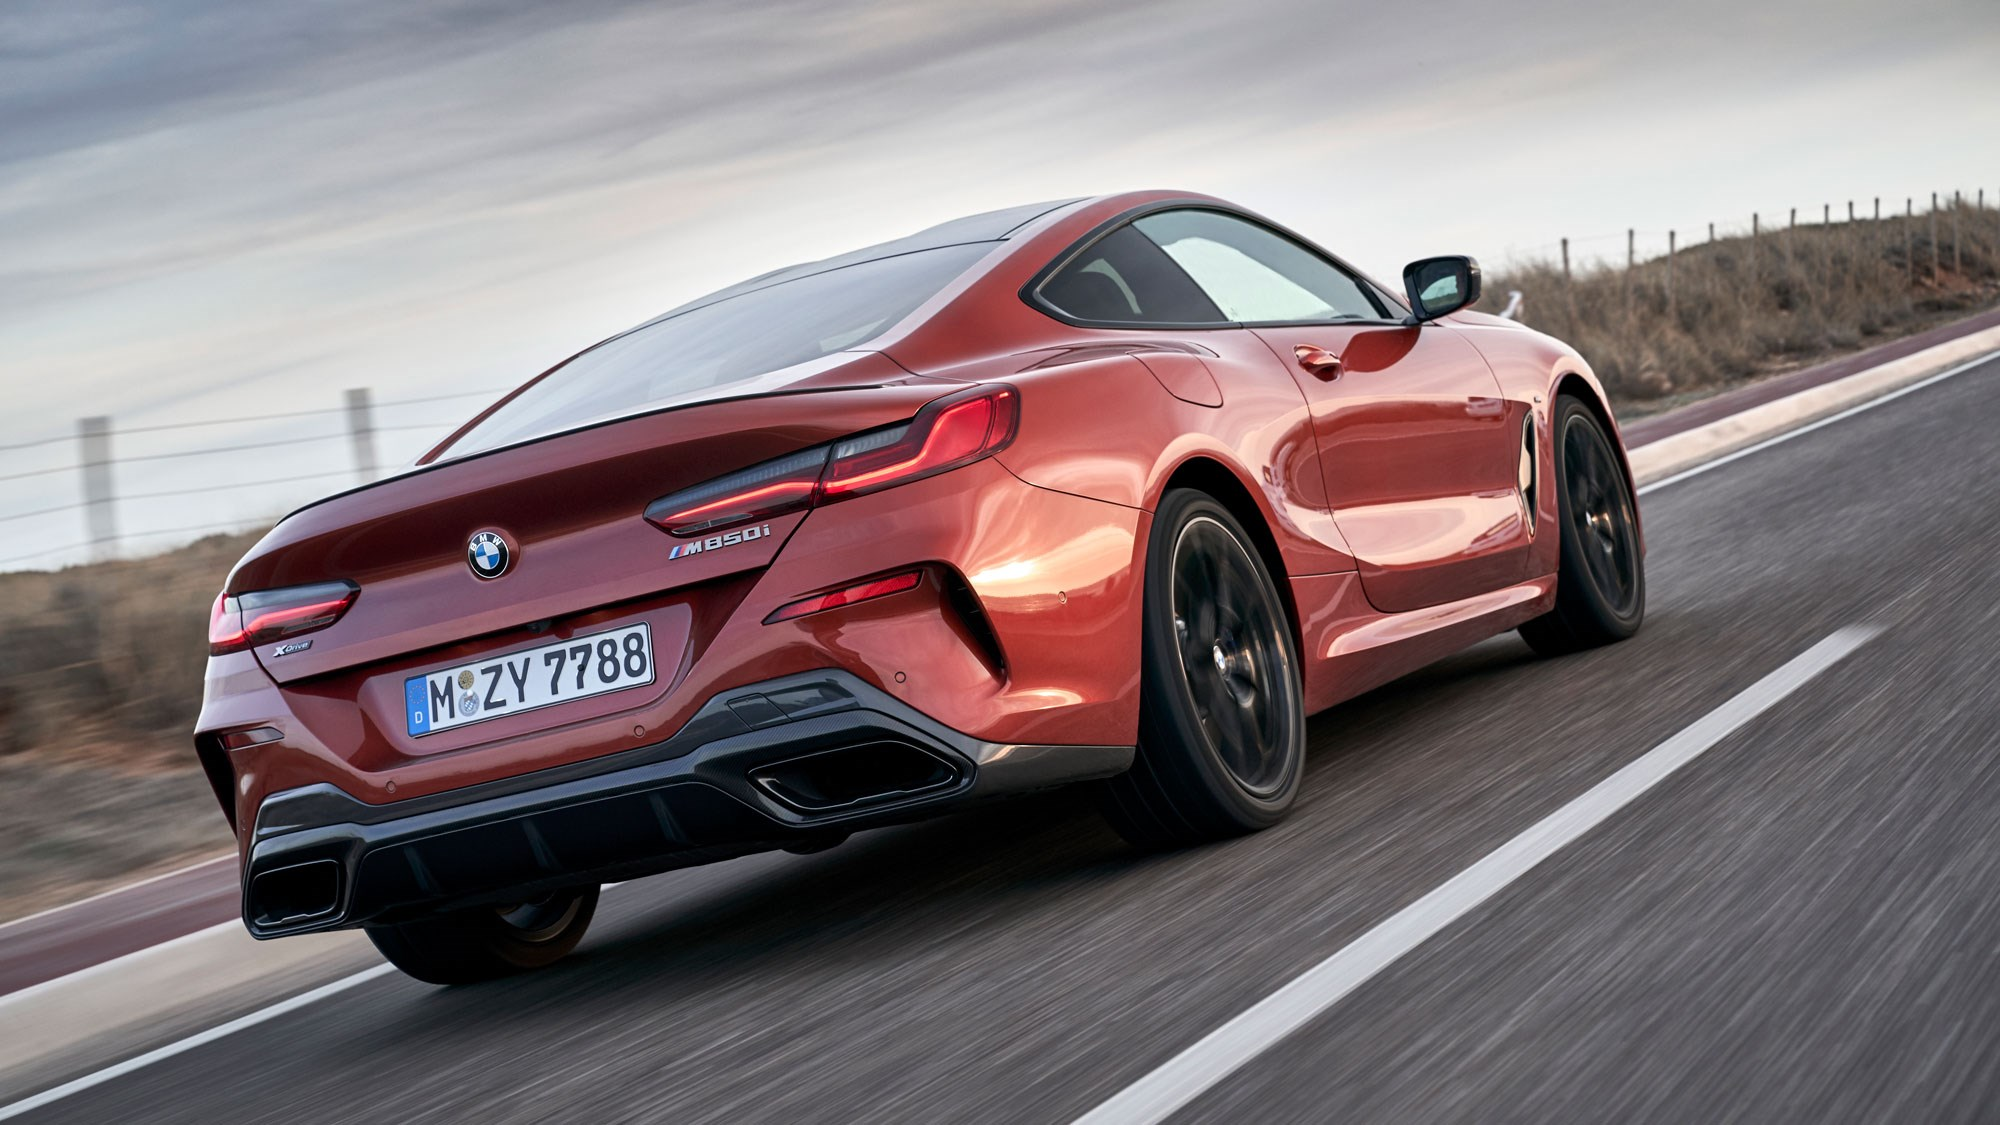 New Bmw 8 Series 2018 Review The Gentleman Racer Car Magazine